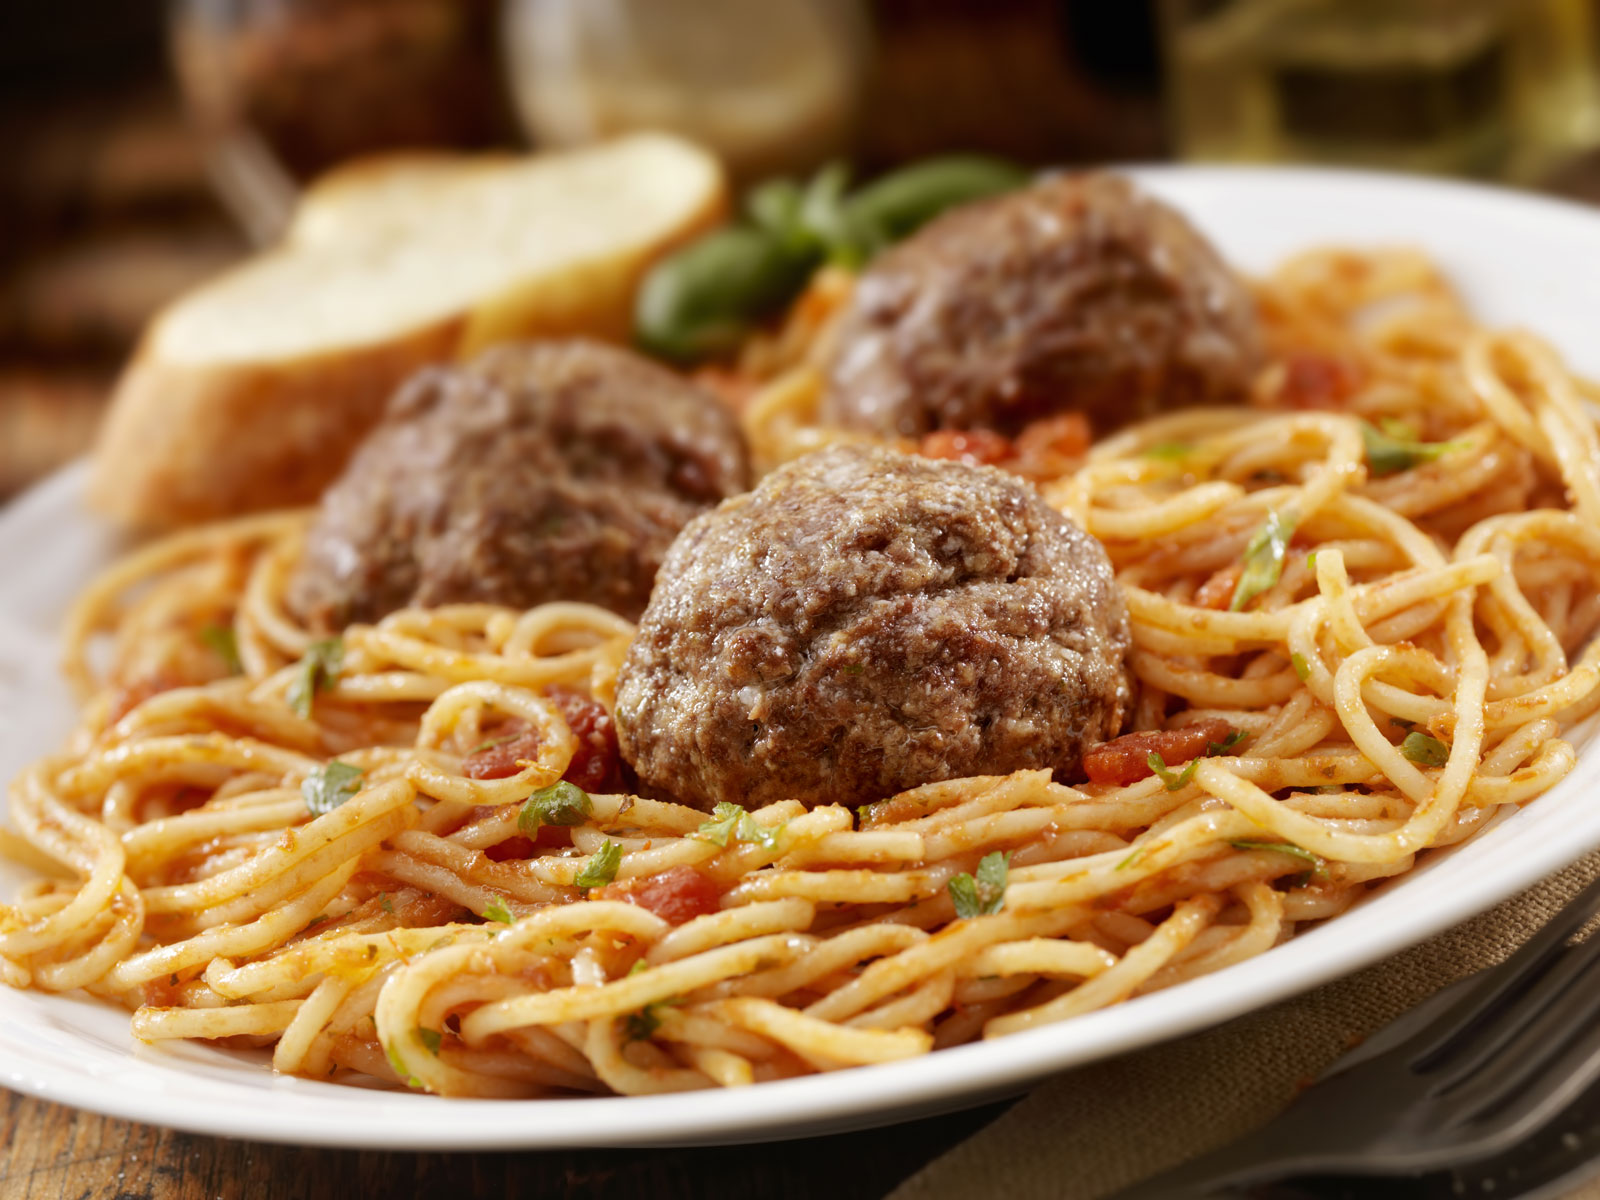 Excessive Restaurant Portions Are Not Just an American Phenomenon, Says Study